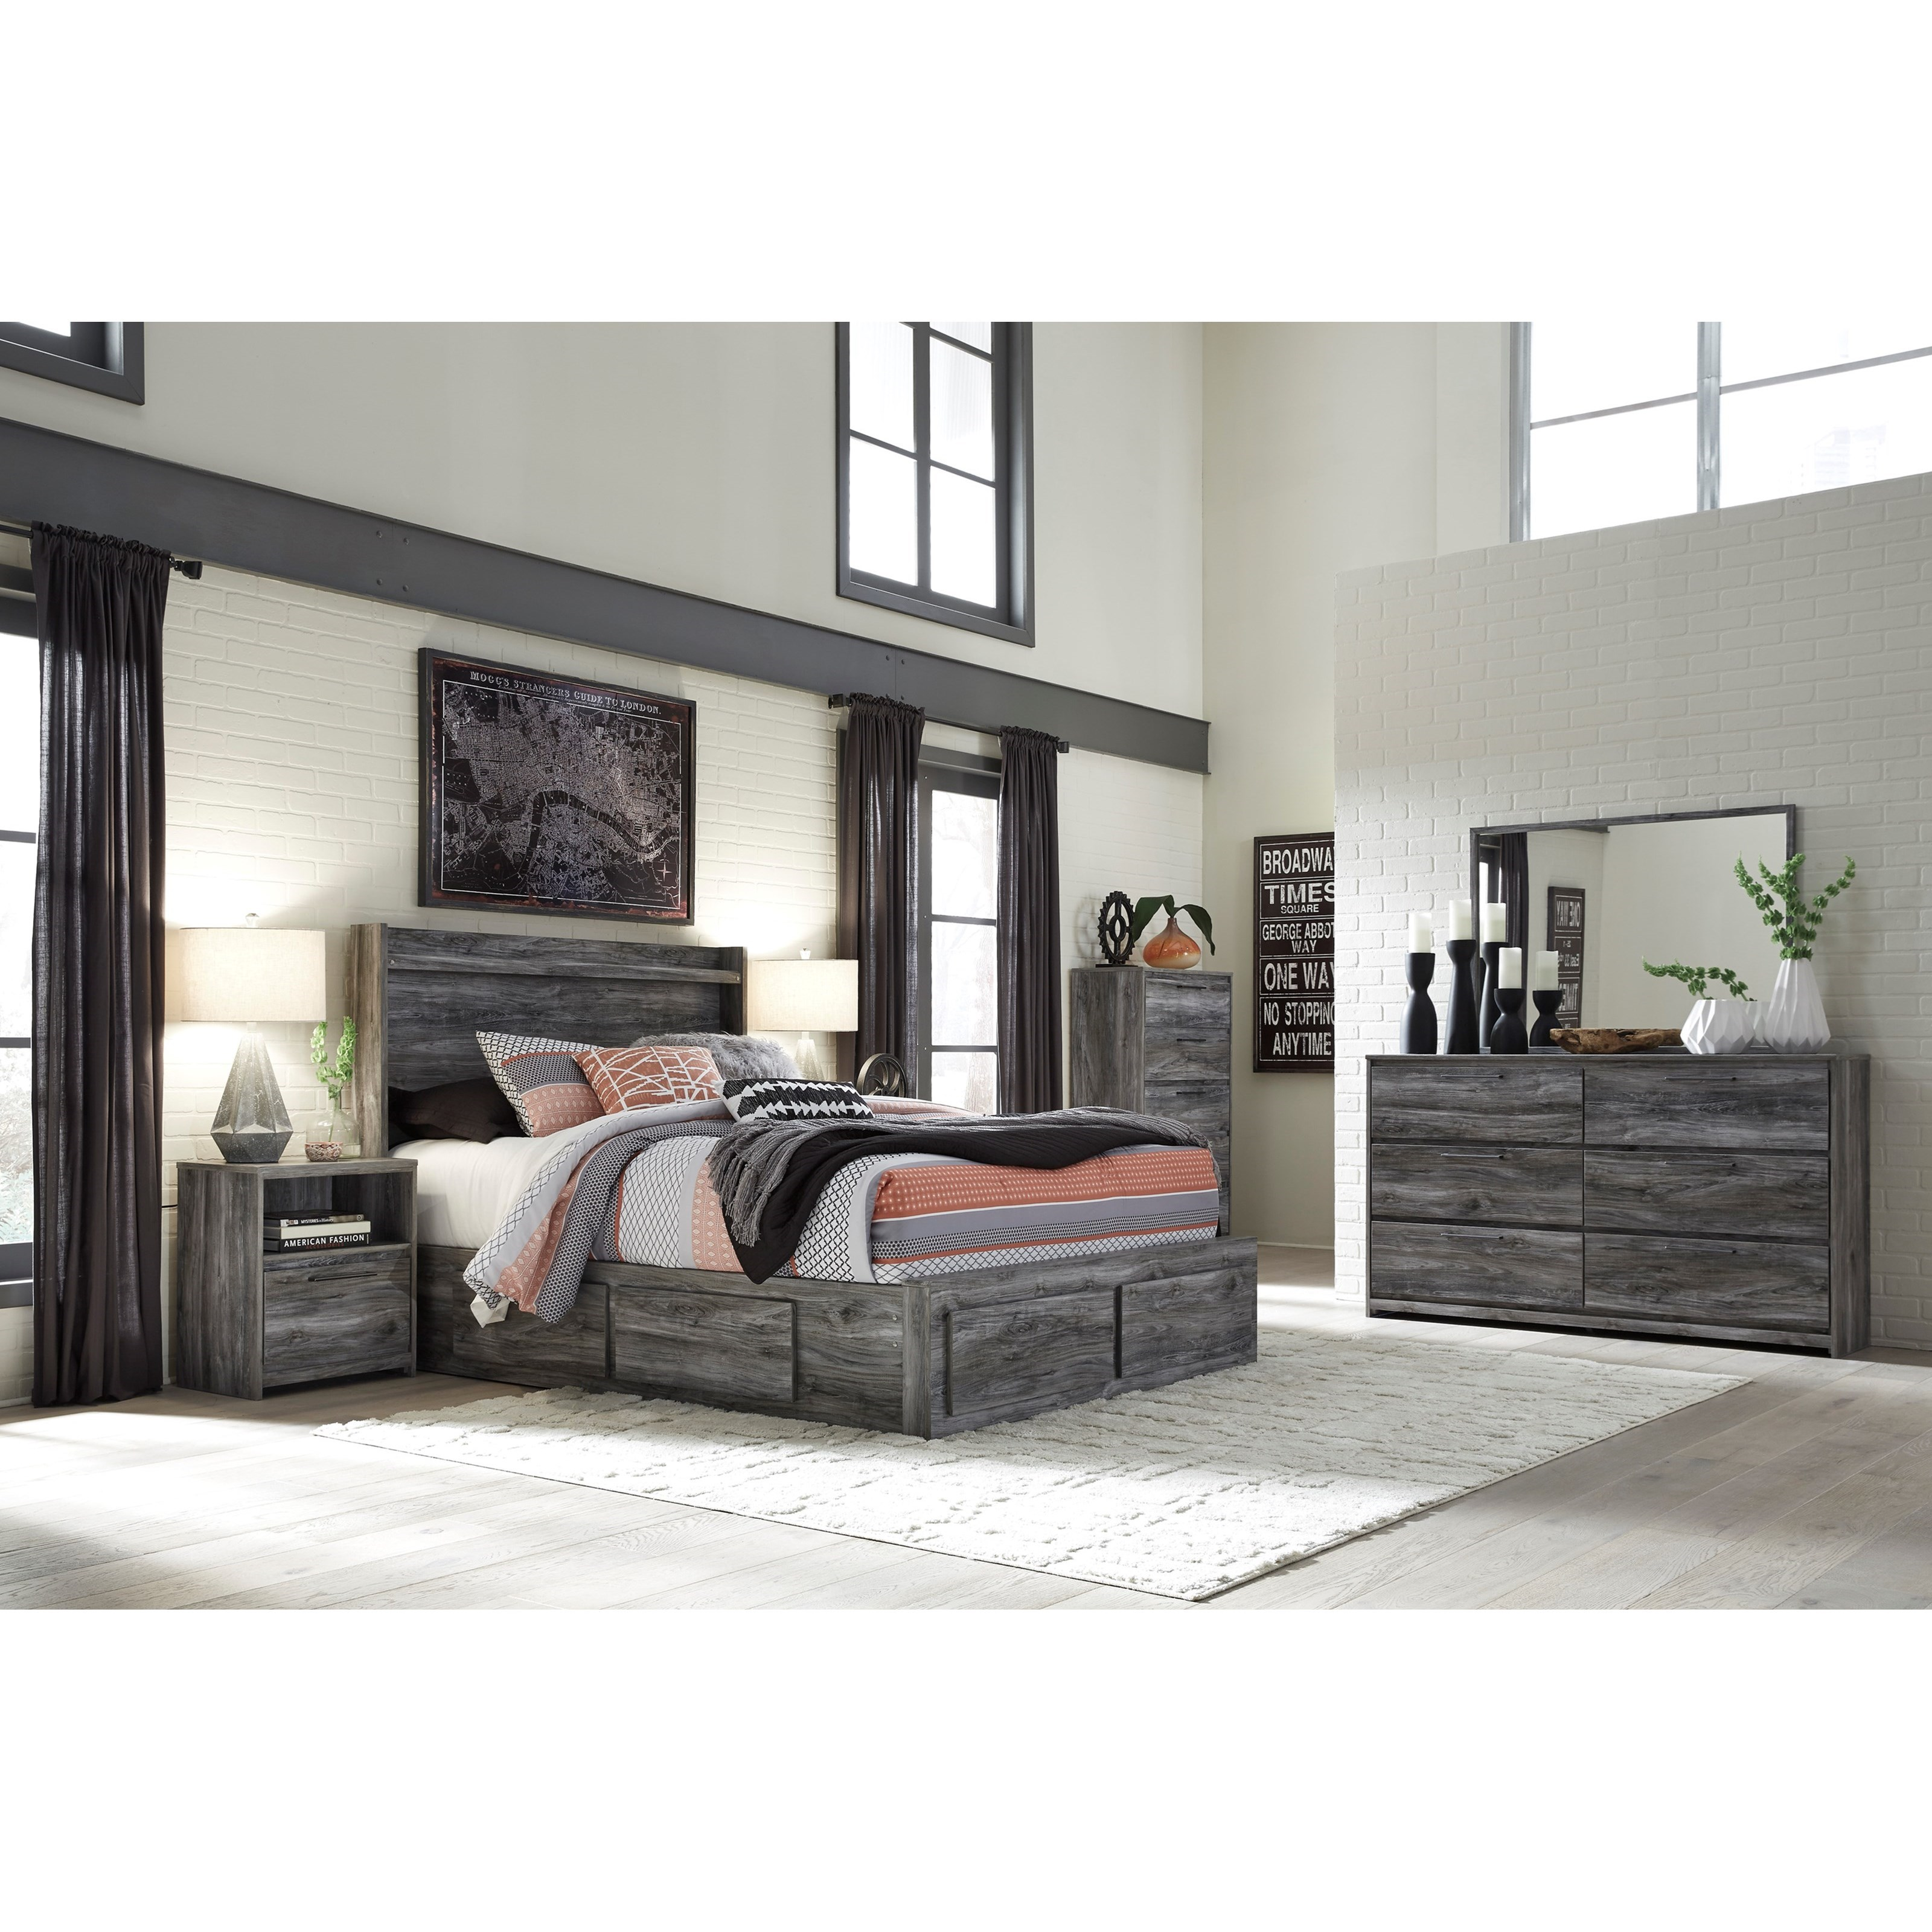 Baystorm King Bedroom Group by Signature Design by Ashley at Zak's Warehouse Clearance Center